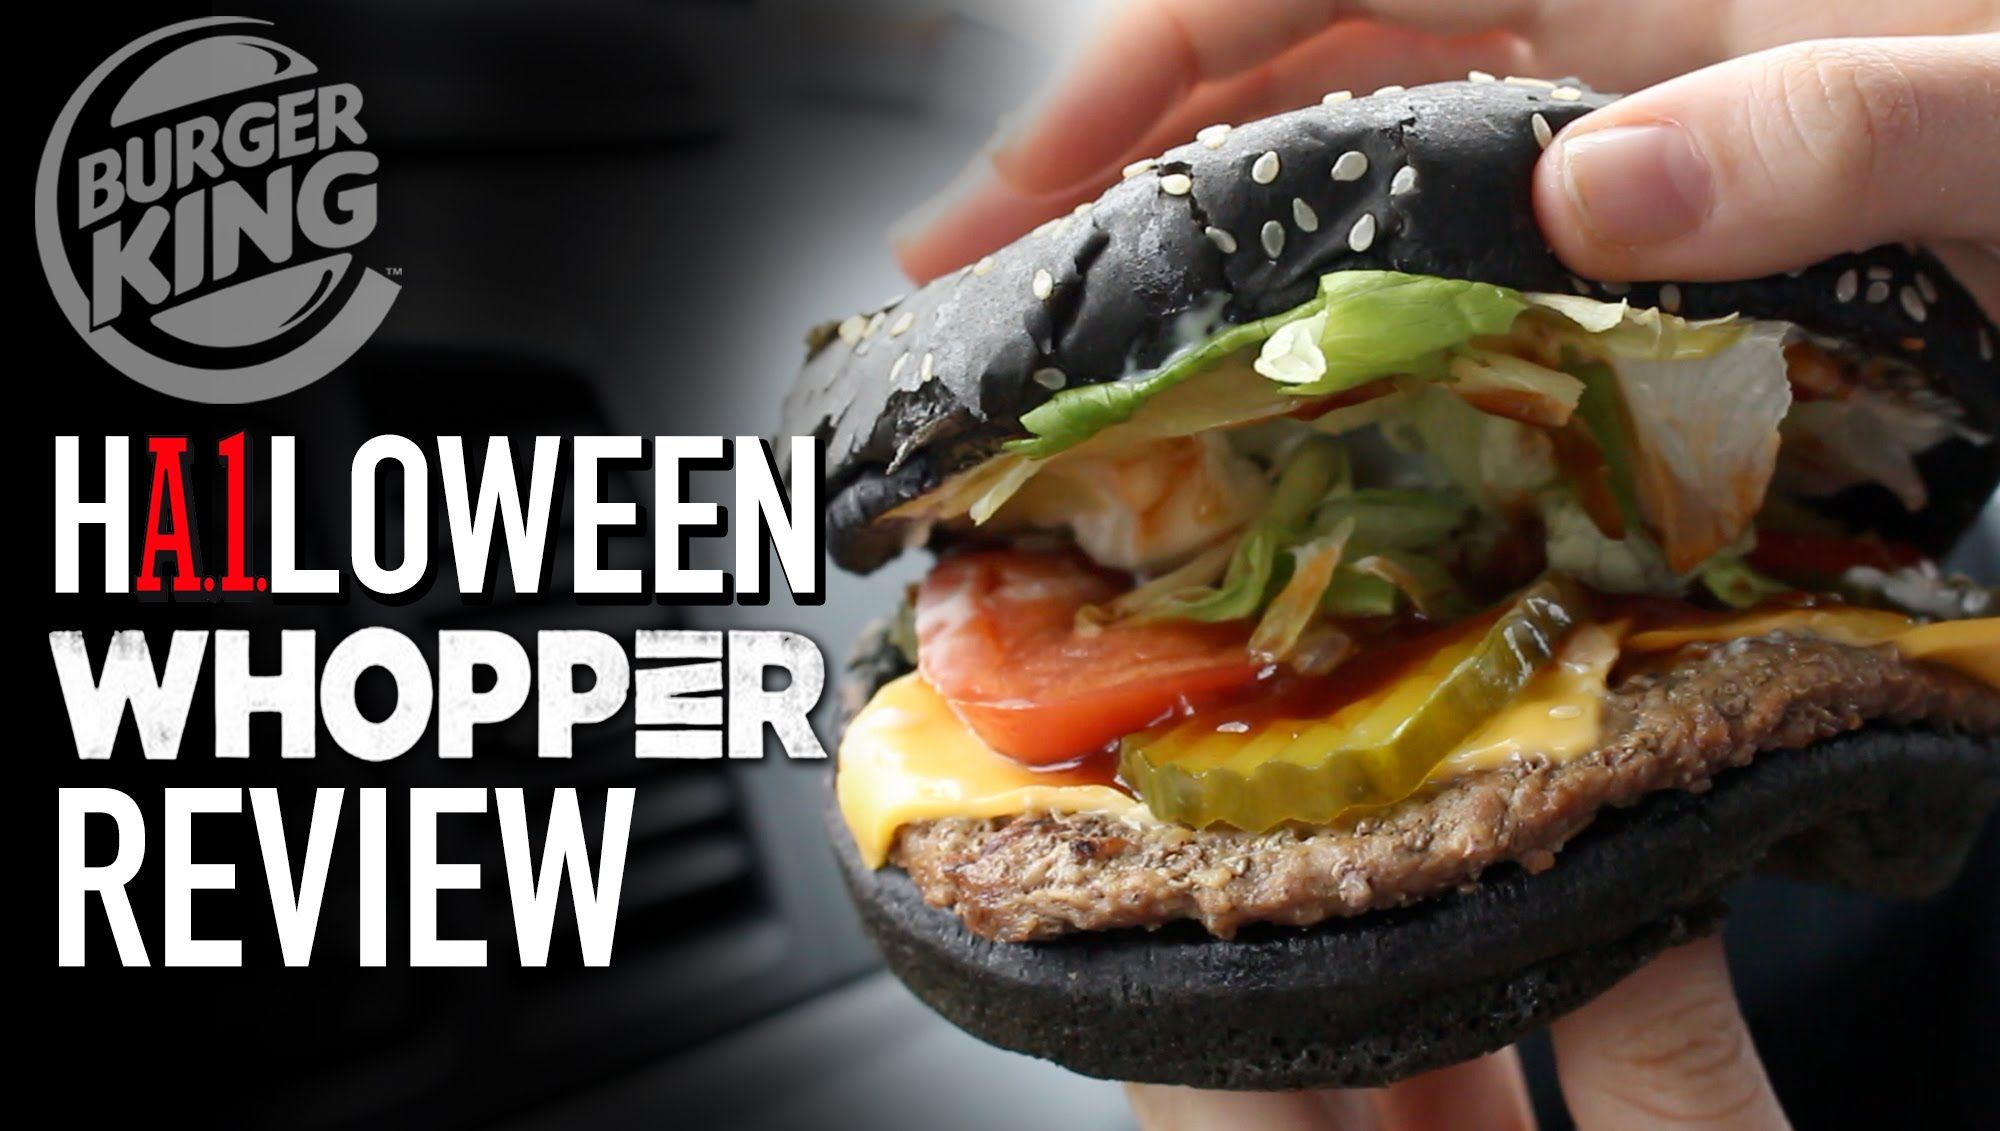 Burger King Halloween A1 Whopper Review | HellthyJunkFood | Food ...